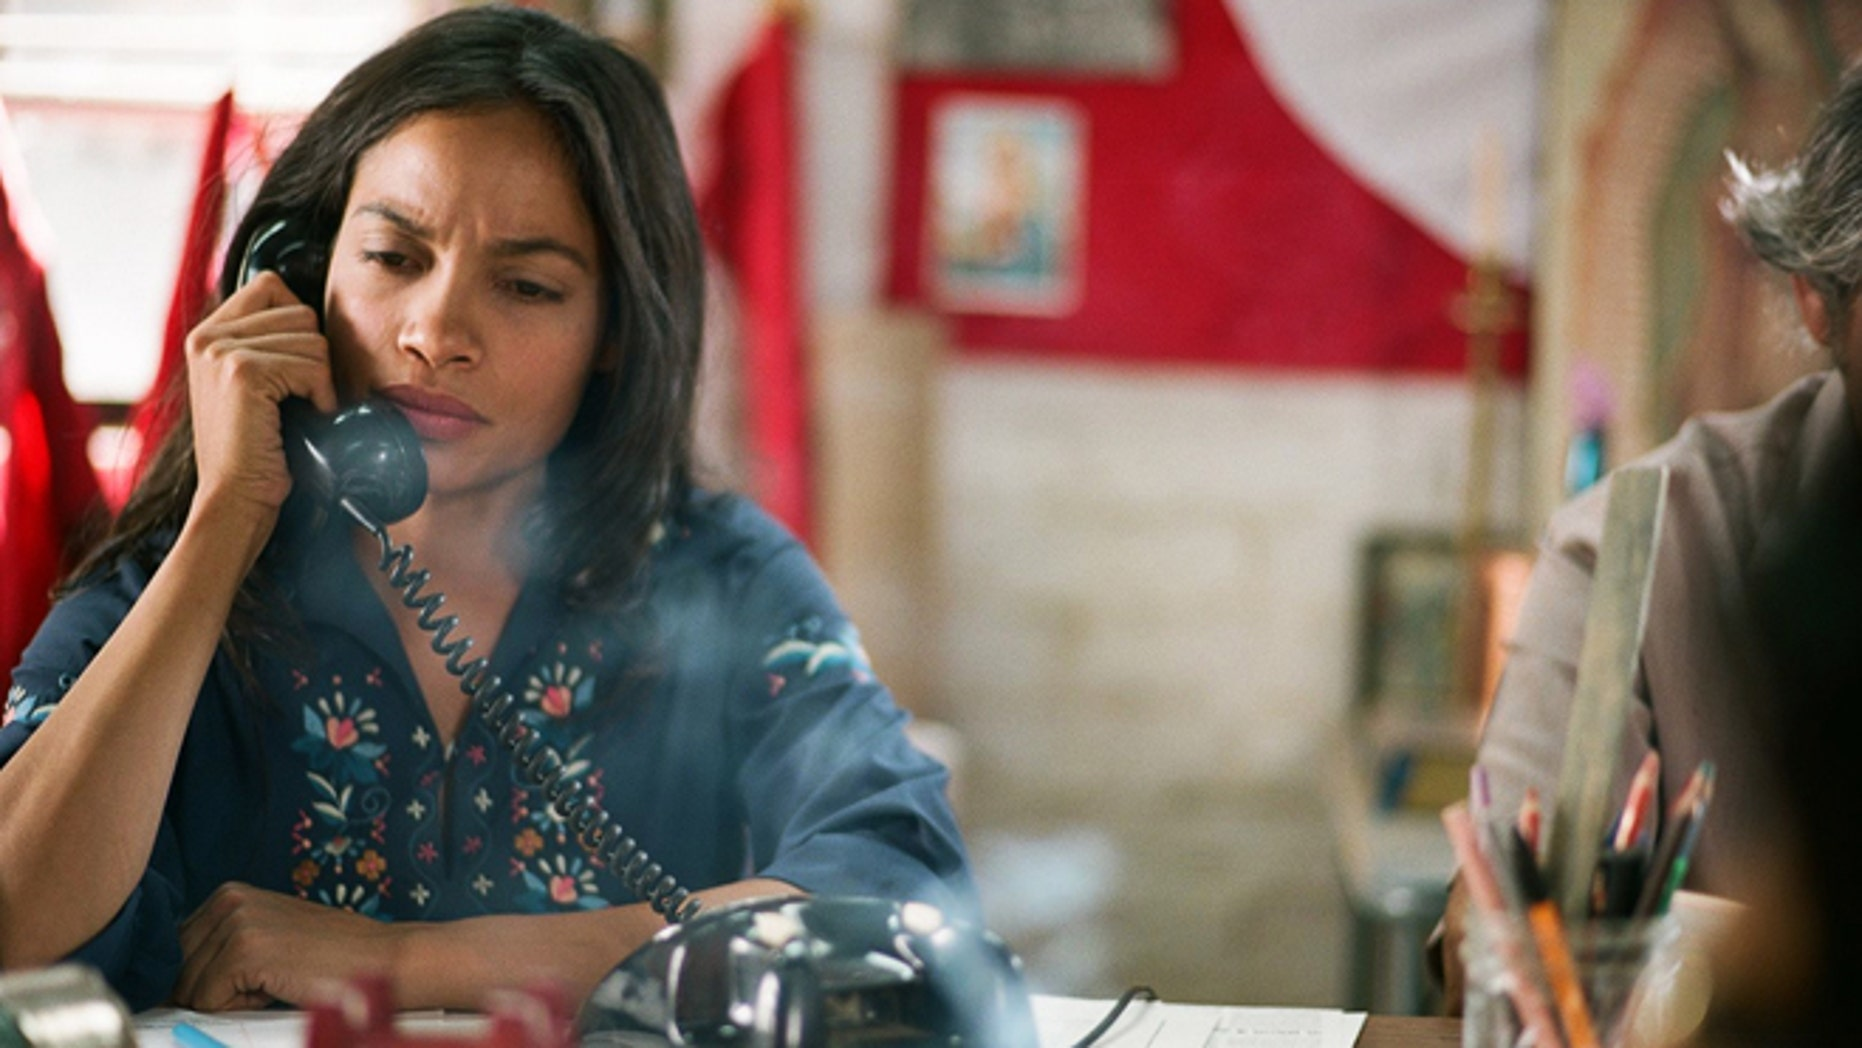 """This photo released by Pantelion Films shows Rosario Dawson as Dolores Huerta, in a scene from """"Cesar Chavez."""" The movie opens Friday, March 28, 2014, after its premieres at the Berlin Film Festival and South by Southwest, and after a special screening with Barack Obama at The White House. (AP Photo/Pantelion Films)"""